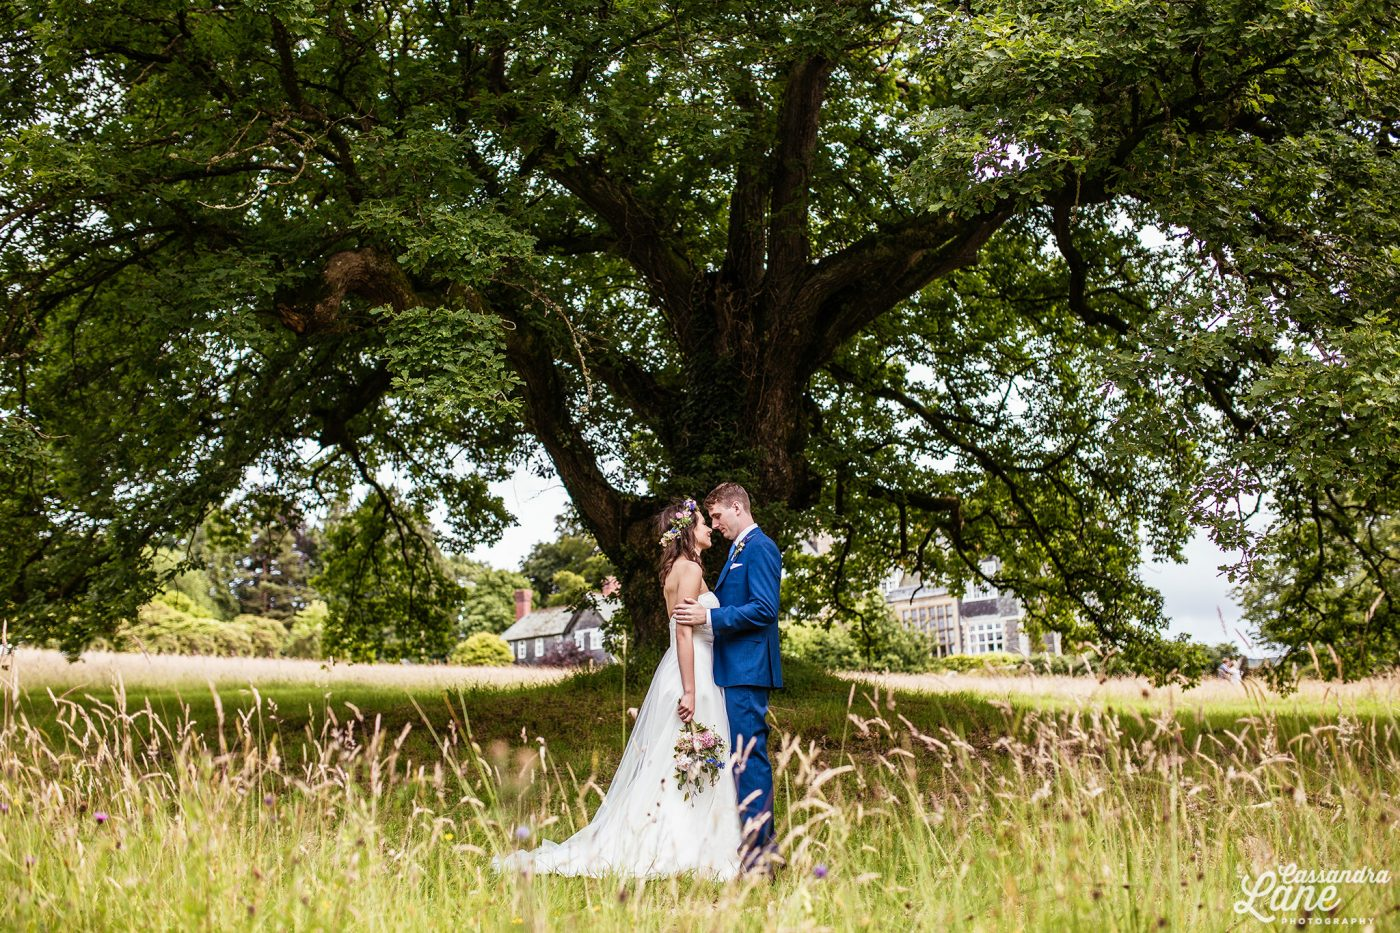 Plas Dinam Country House Wedding Venue